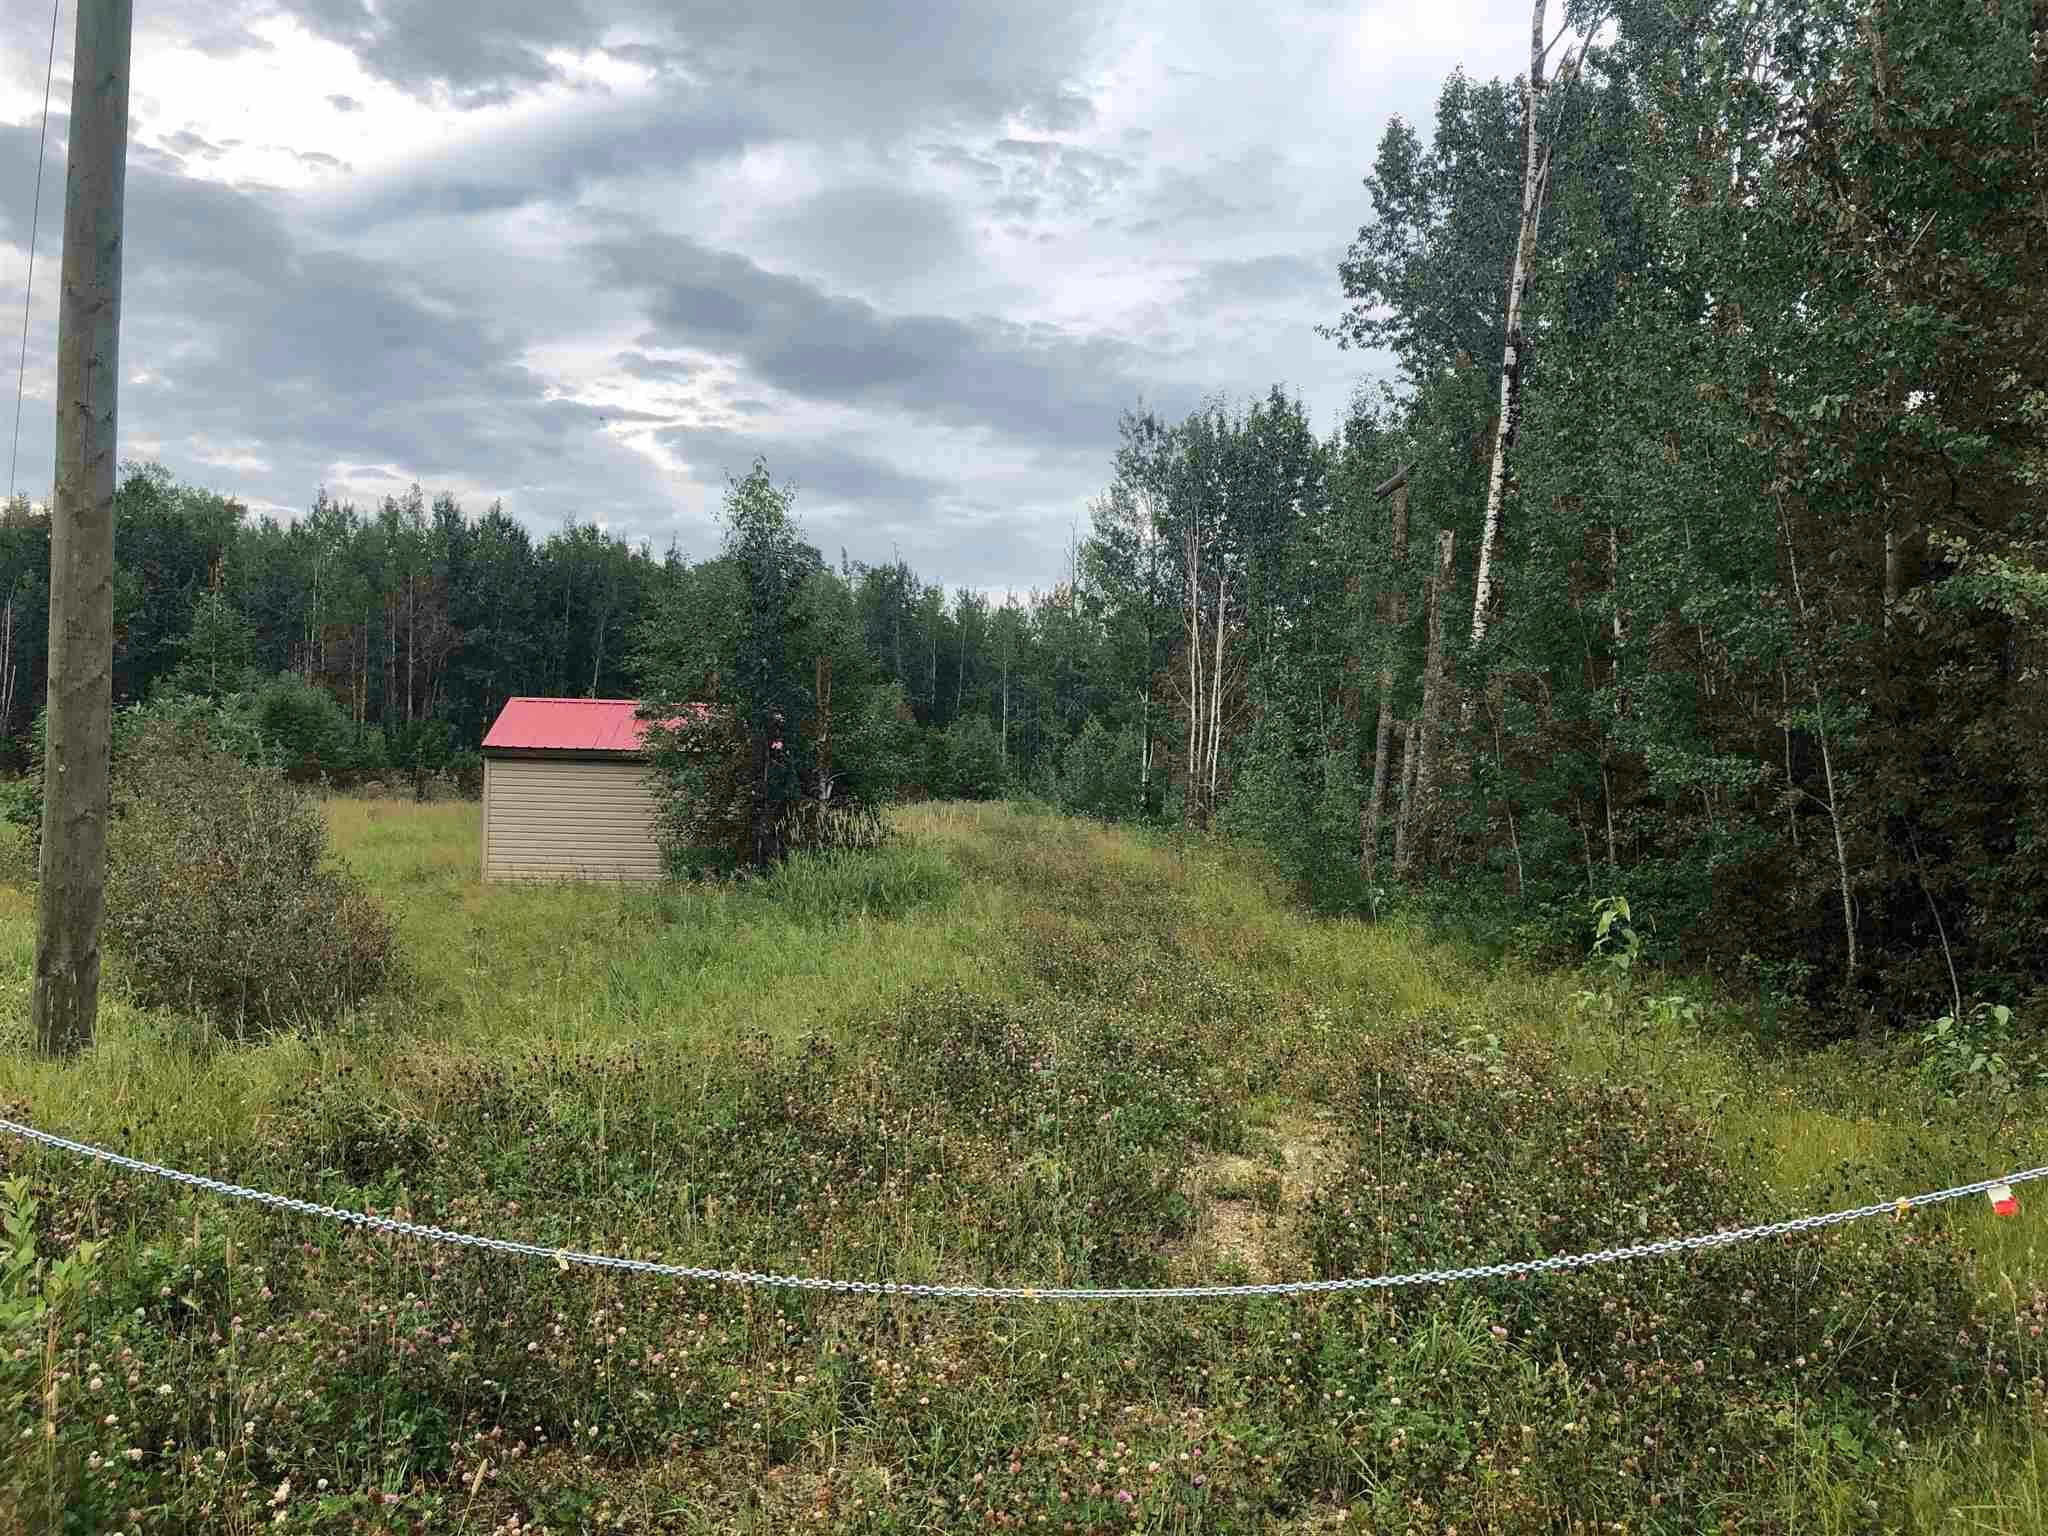 Main Photo: 29 Village West: Rural Wetaskiwin County Rural Land/Vacant Lot for sale : MLS®# E4258090